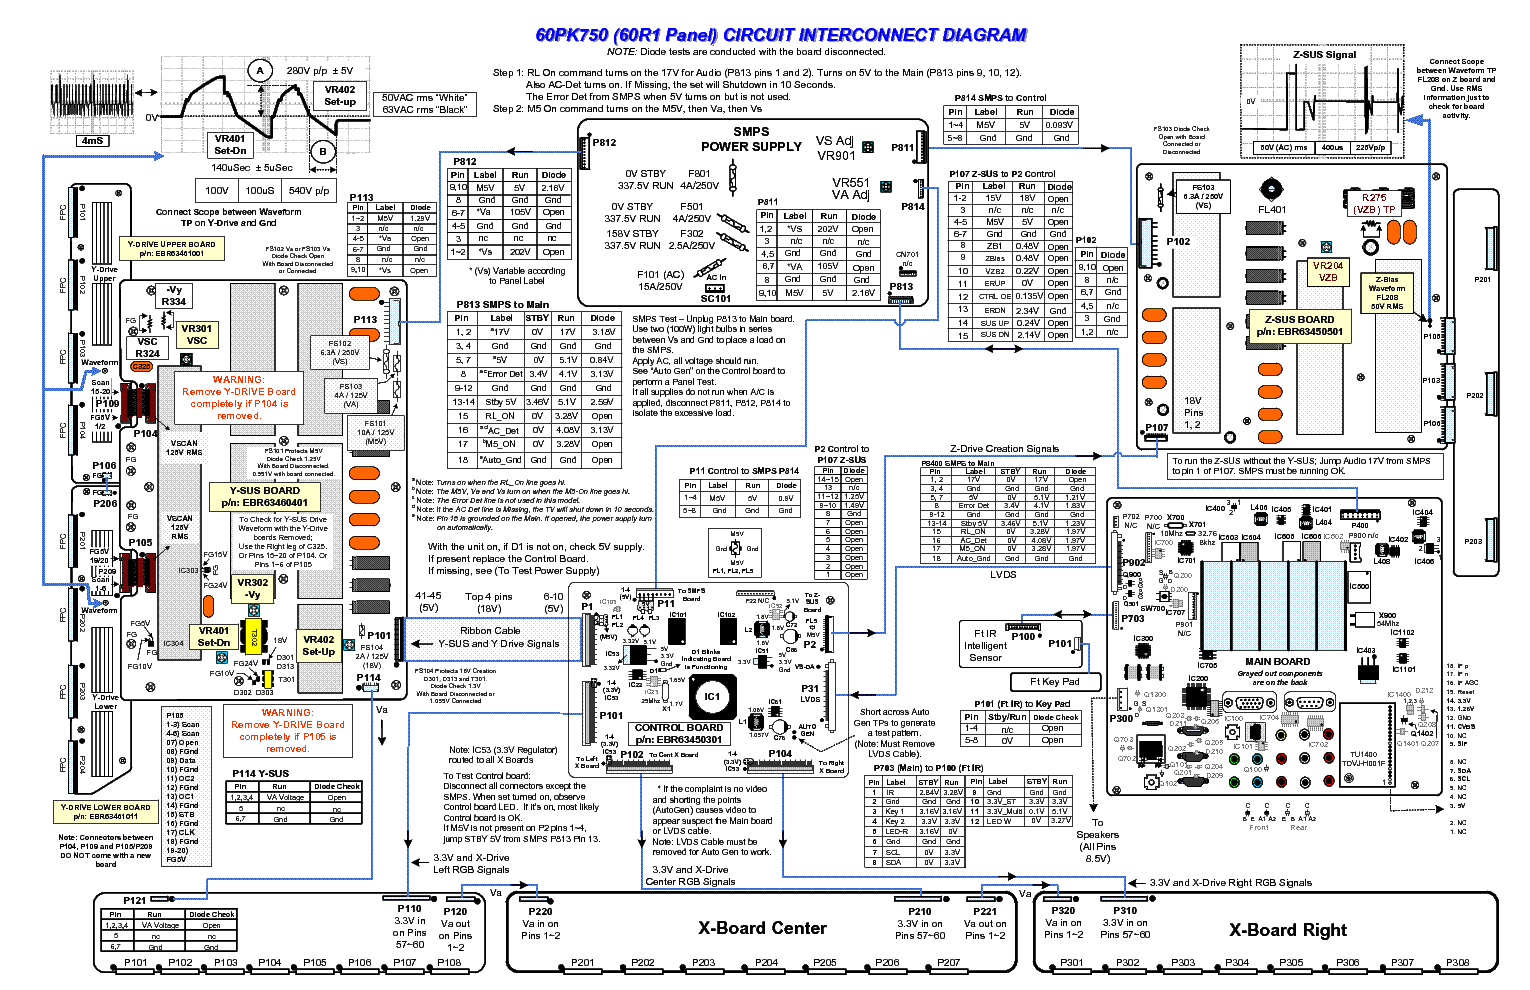 Circuit Board Wiring Diagram Symbols Furthermore Circuit Board Diagram